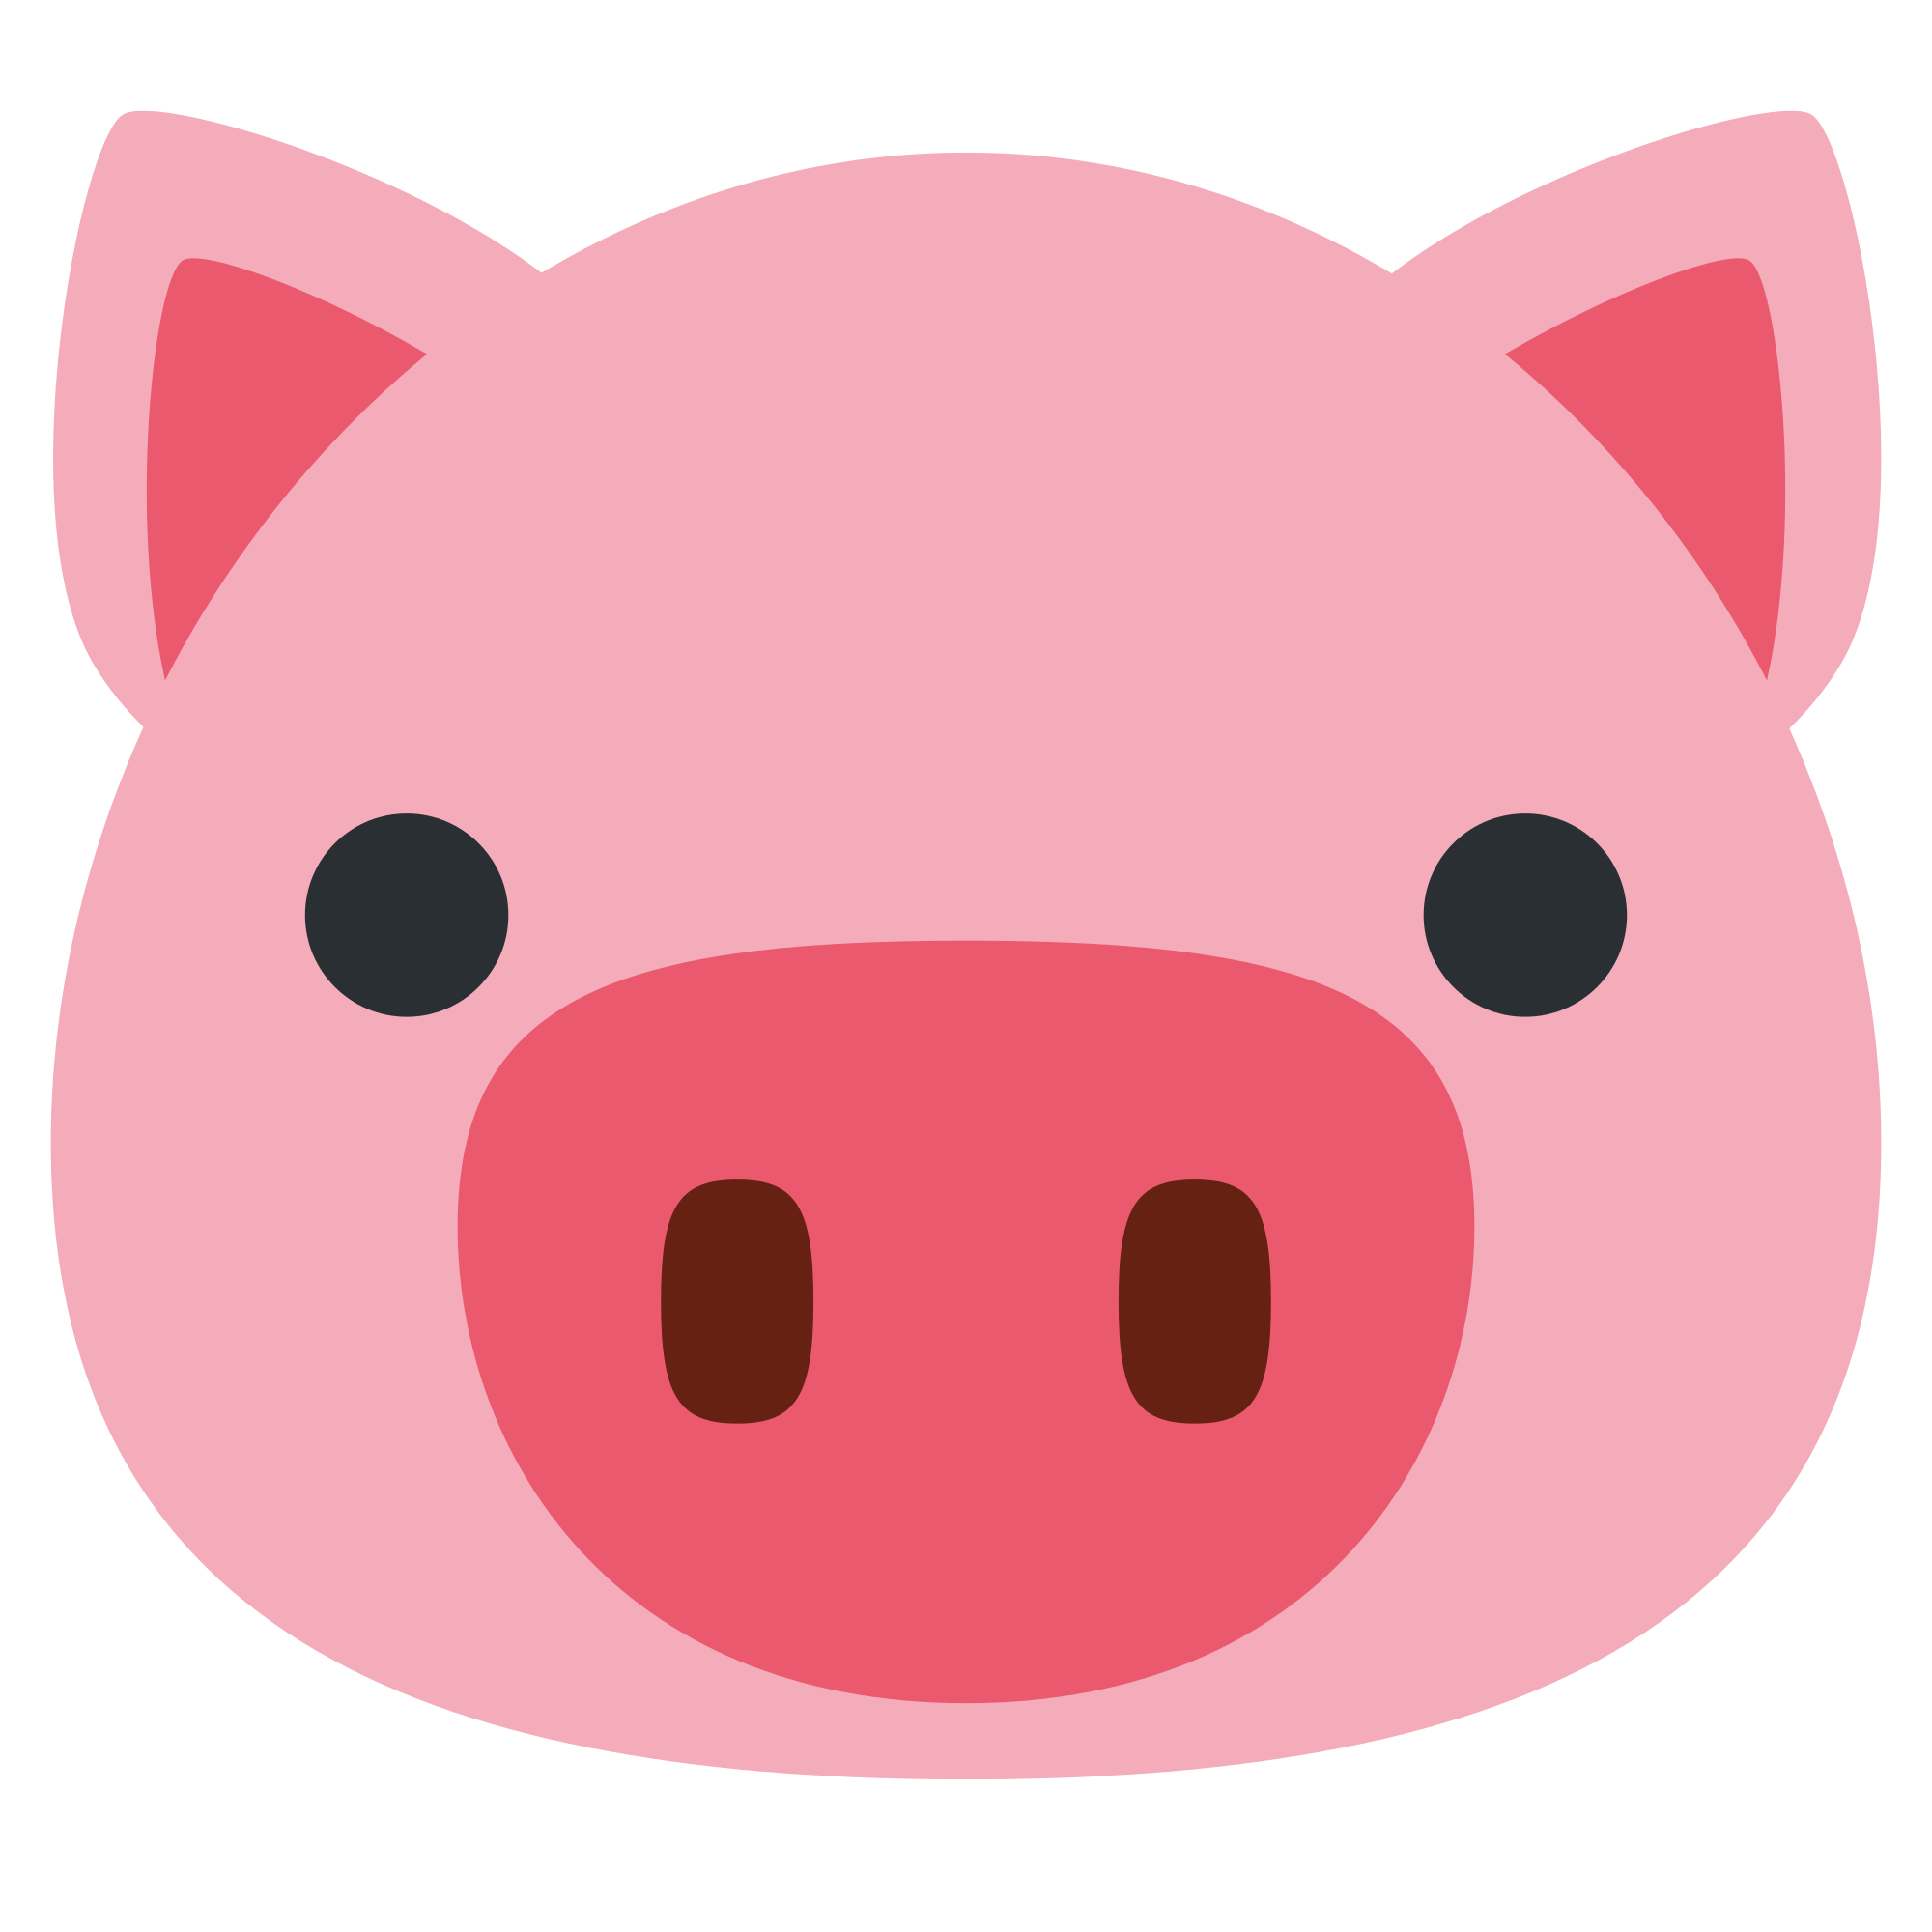 Pig svg #343, Download drawings